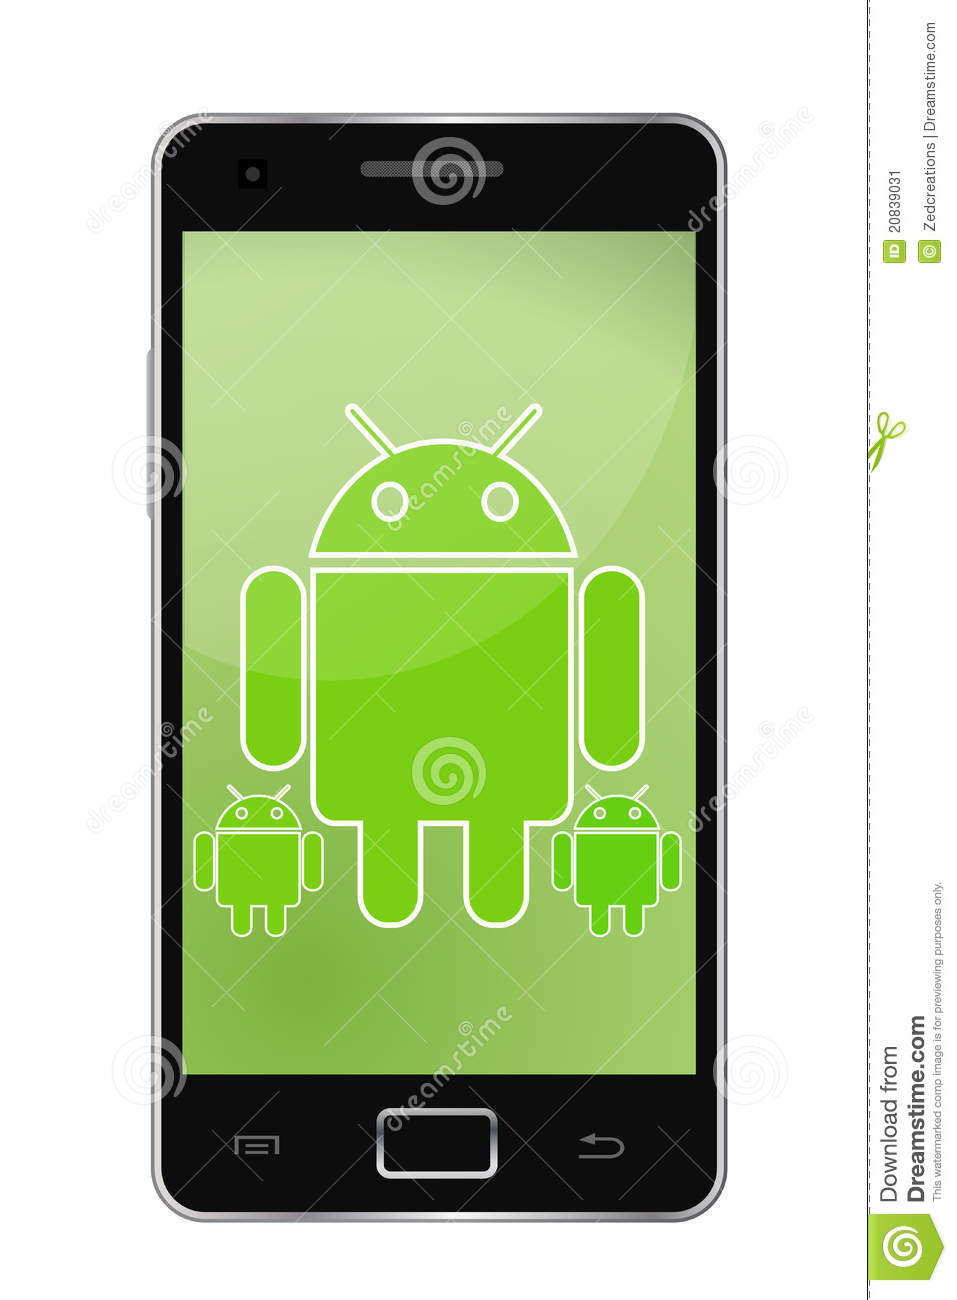 Android Mobile Phone Clipart.